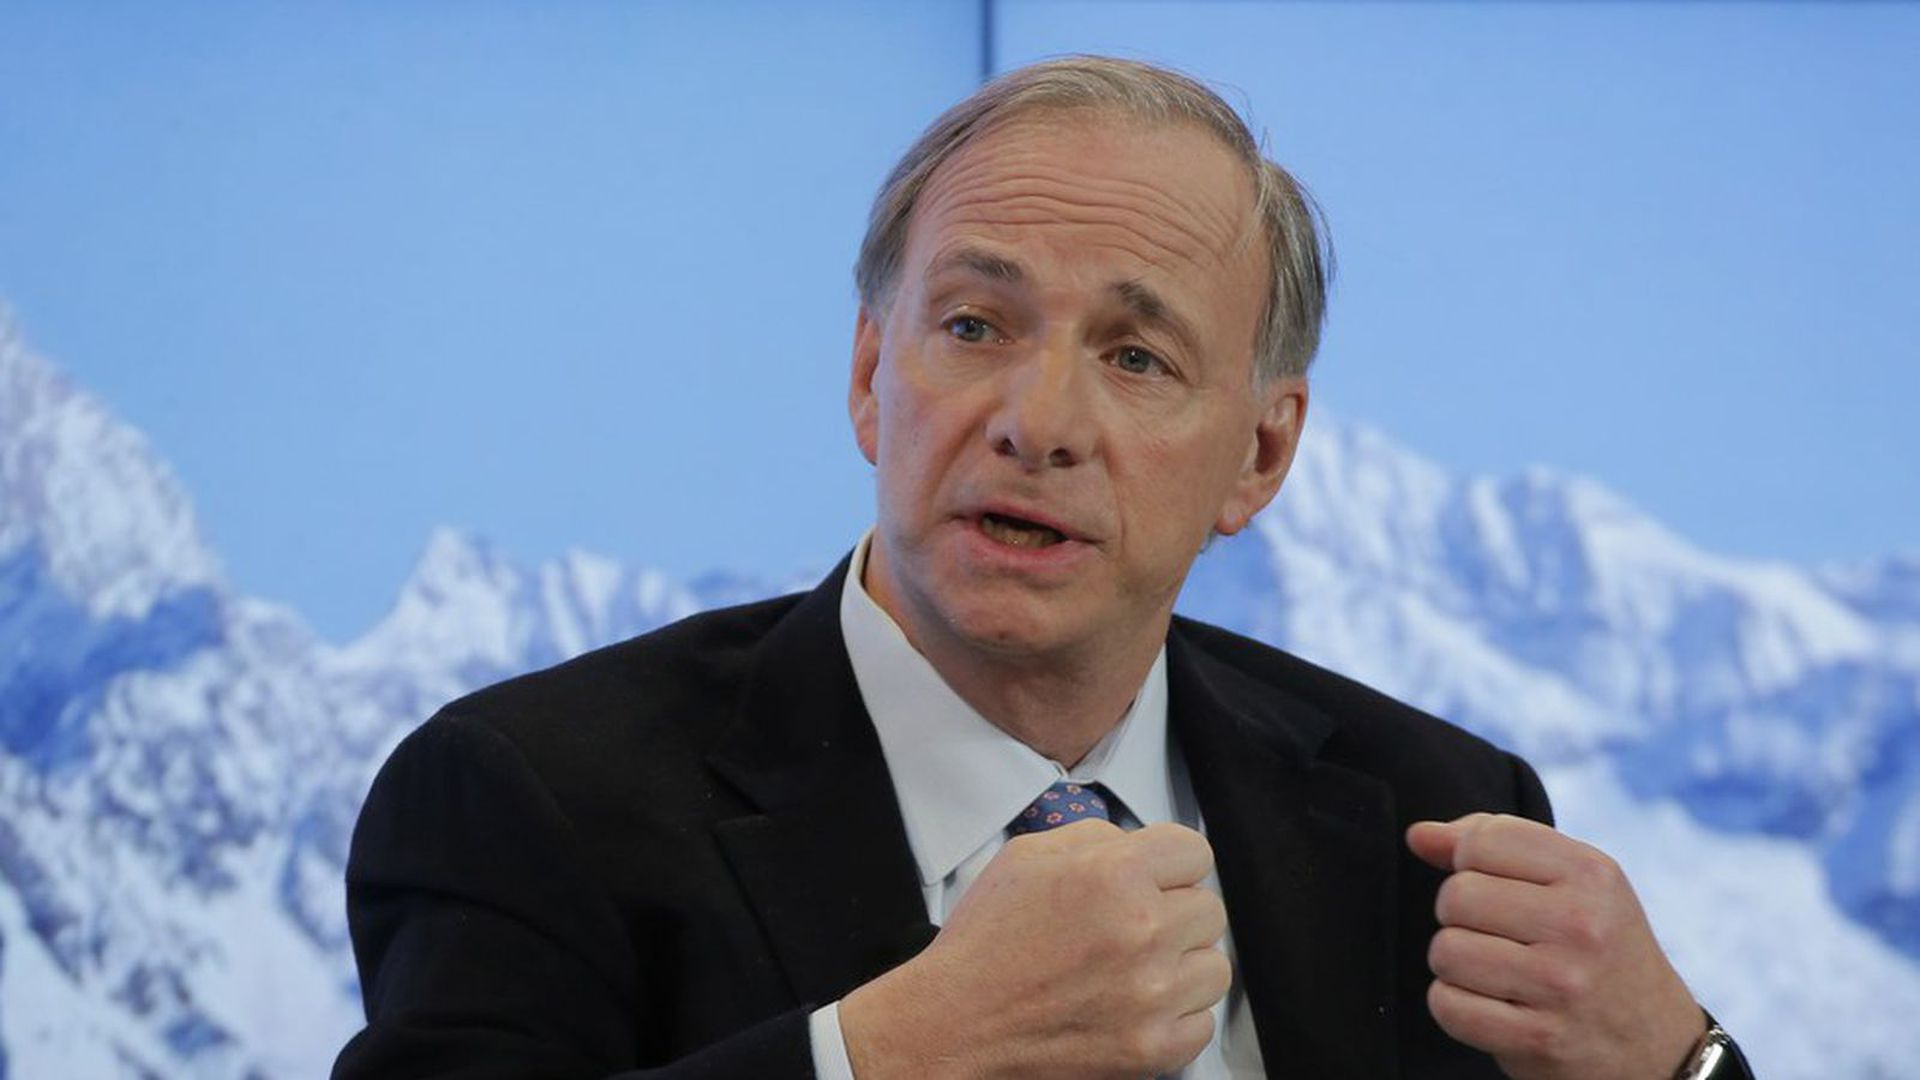 Ray Dalio, founder of Bridgewater Associates, says wealth inequality is a national emergency.